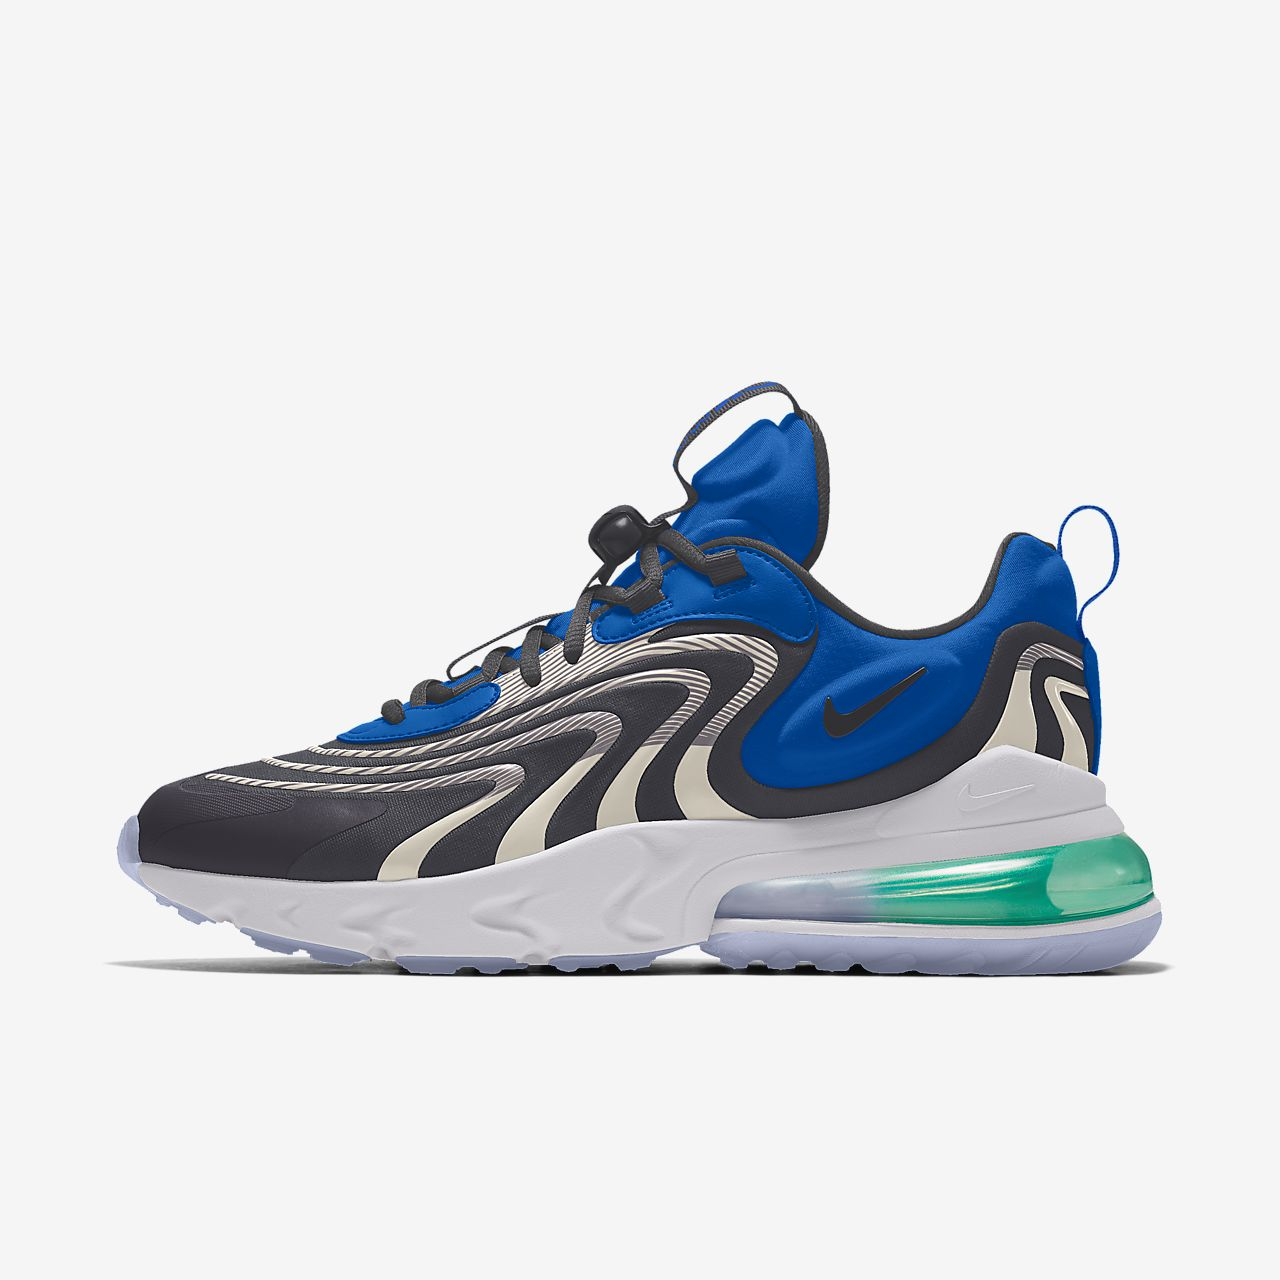 Chaussure lifestyle personnalisable Nike Air Max 270 React ENG Premium By You